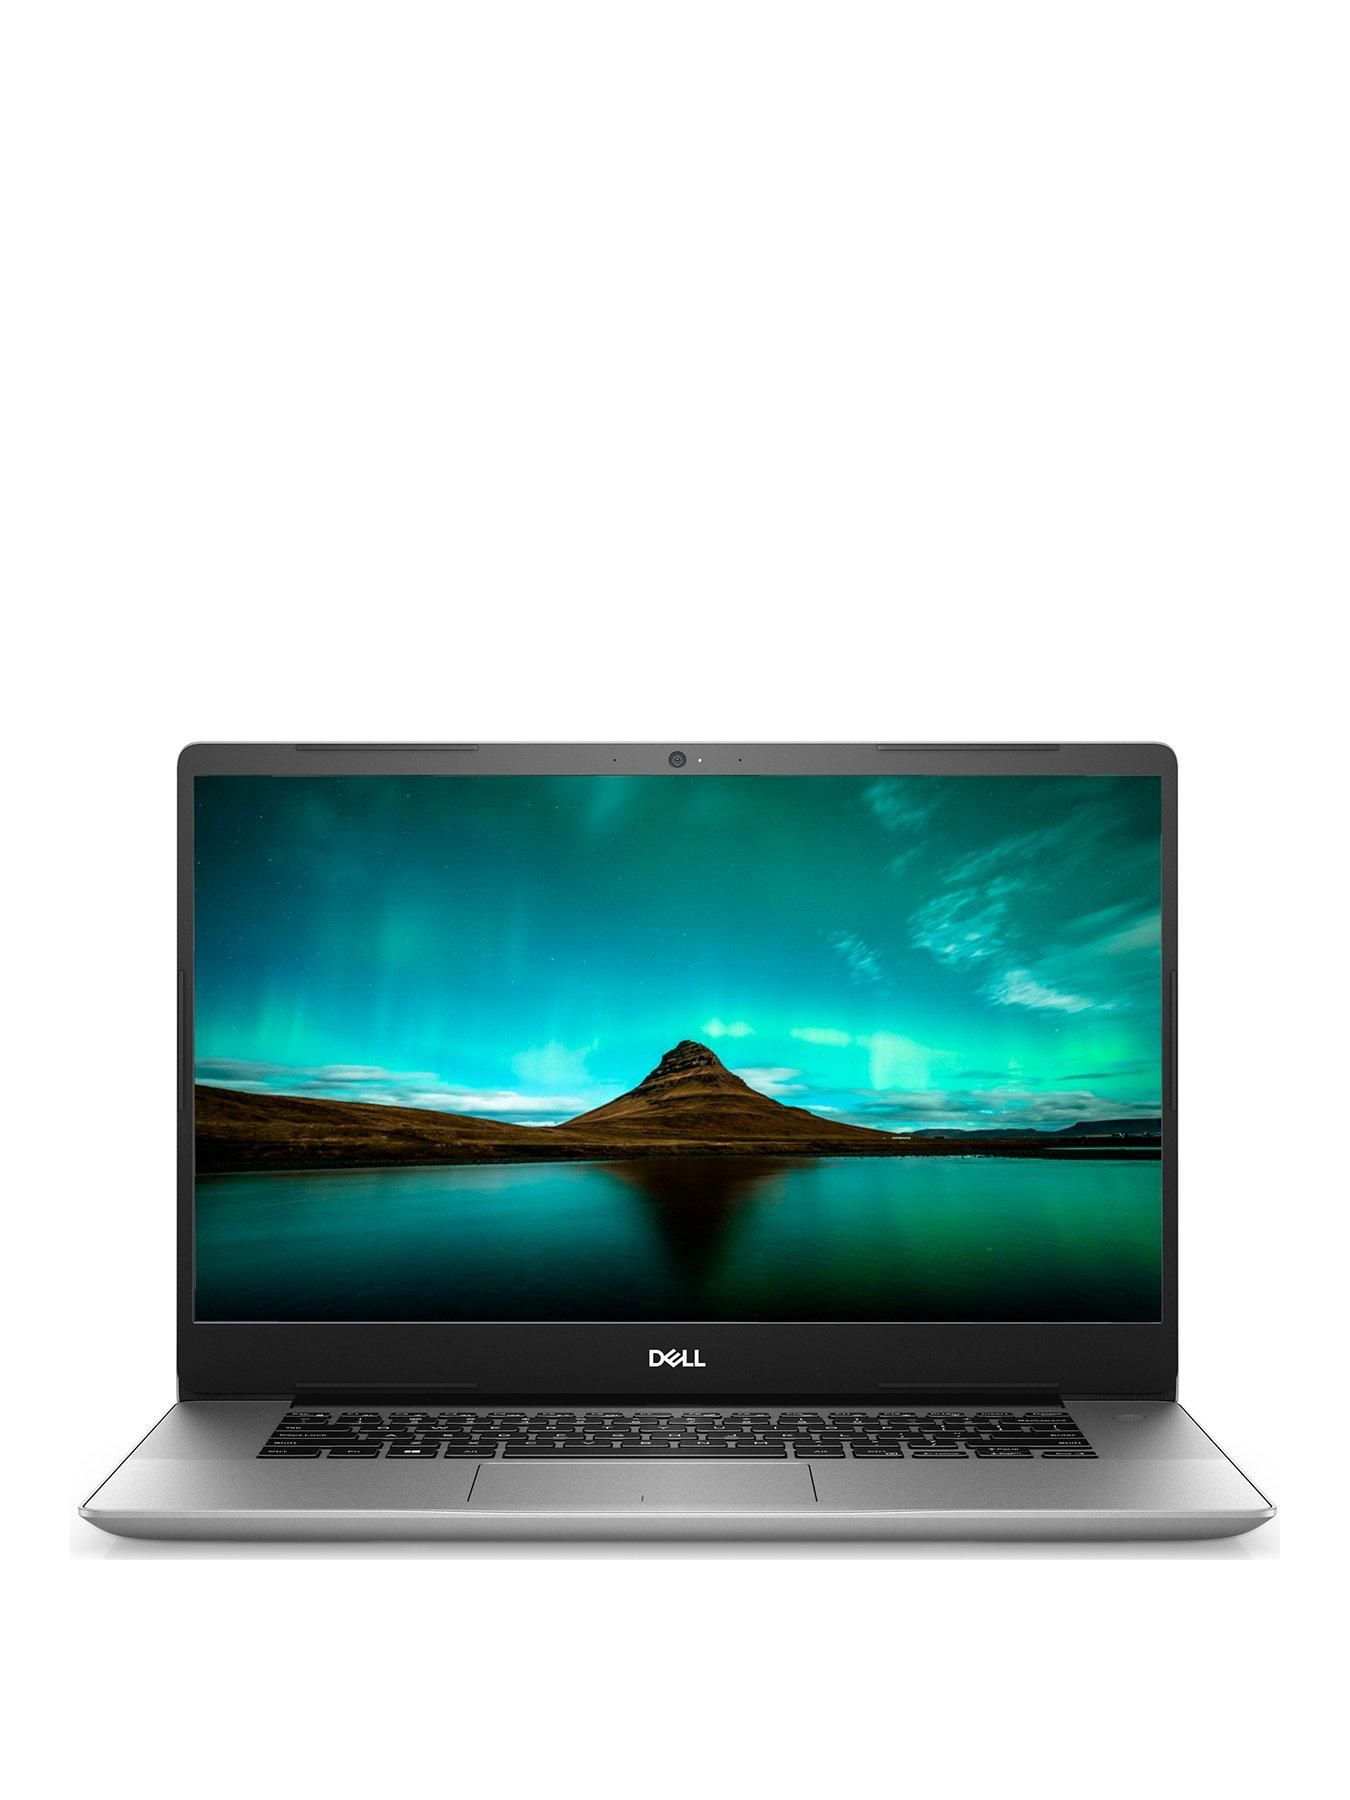 Dell Inspiron 15 5000 Series Intel Reg Core Trade I7 8565u Processor 8gb Ddr4 Ram 1tb Hdd 128gb Ssd 15 6 Inch Full Hd Laptop With 2gb Nvidia In Silver Mobile Connect Hdd